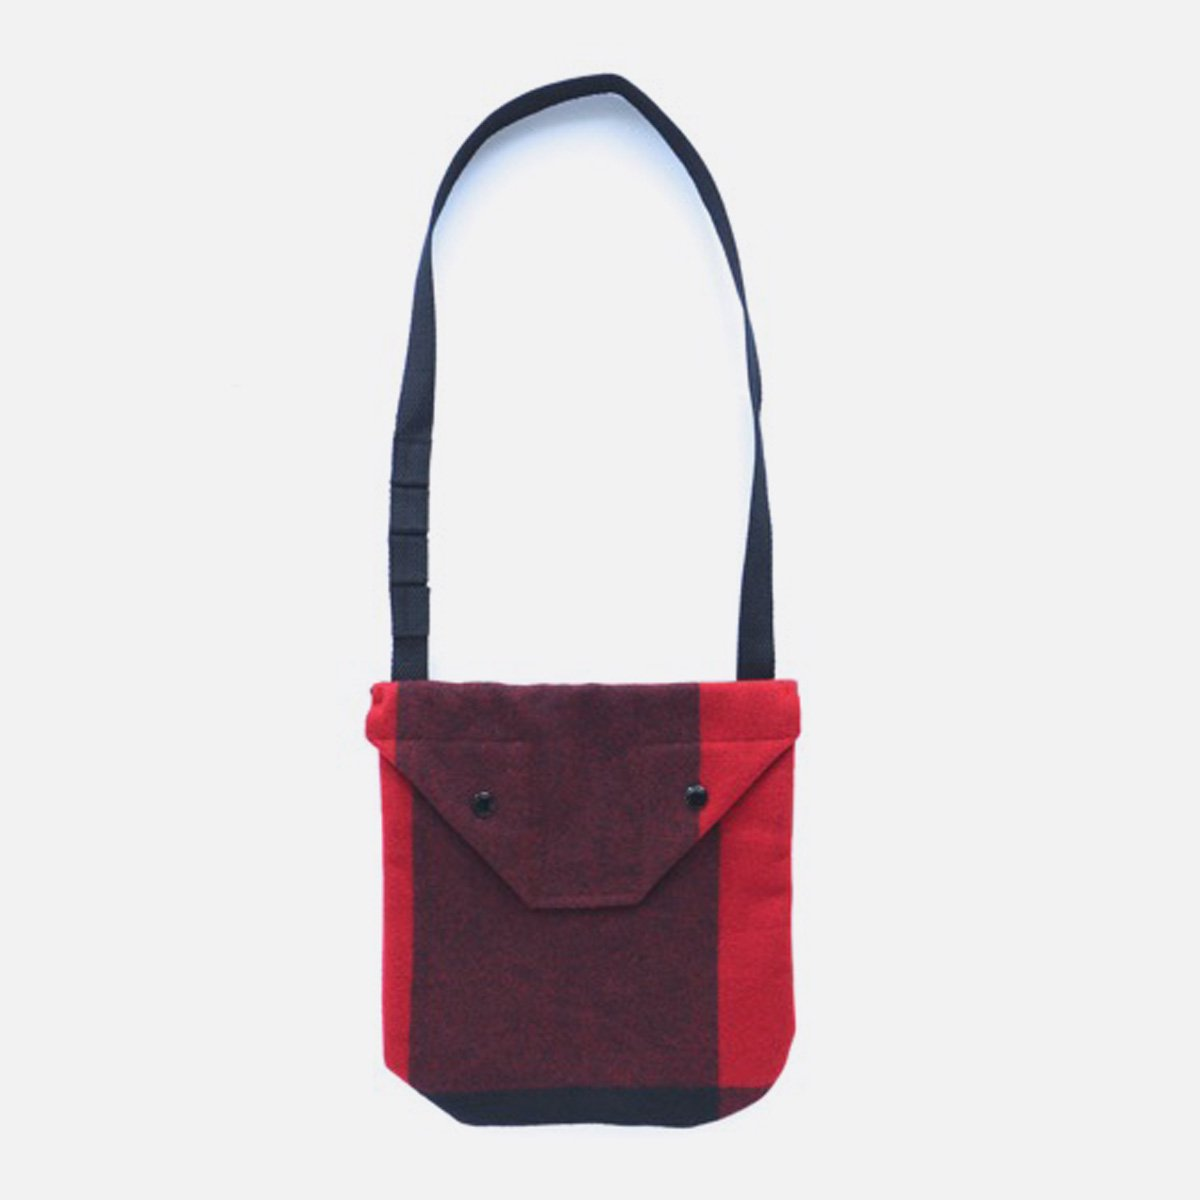 Engineered Garments Shoulder Pouch - Big Plaid Wool Melton  (Red)